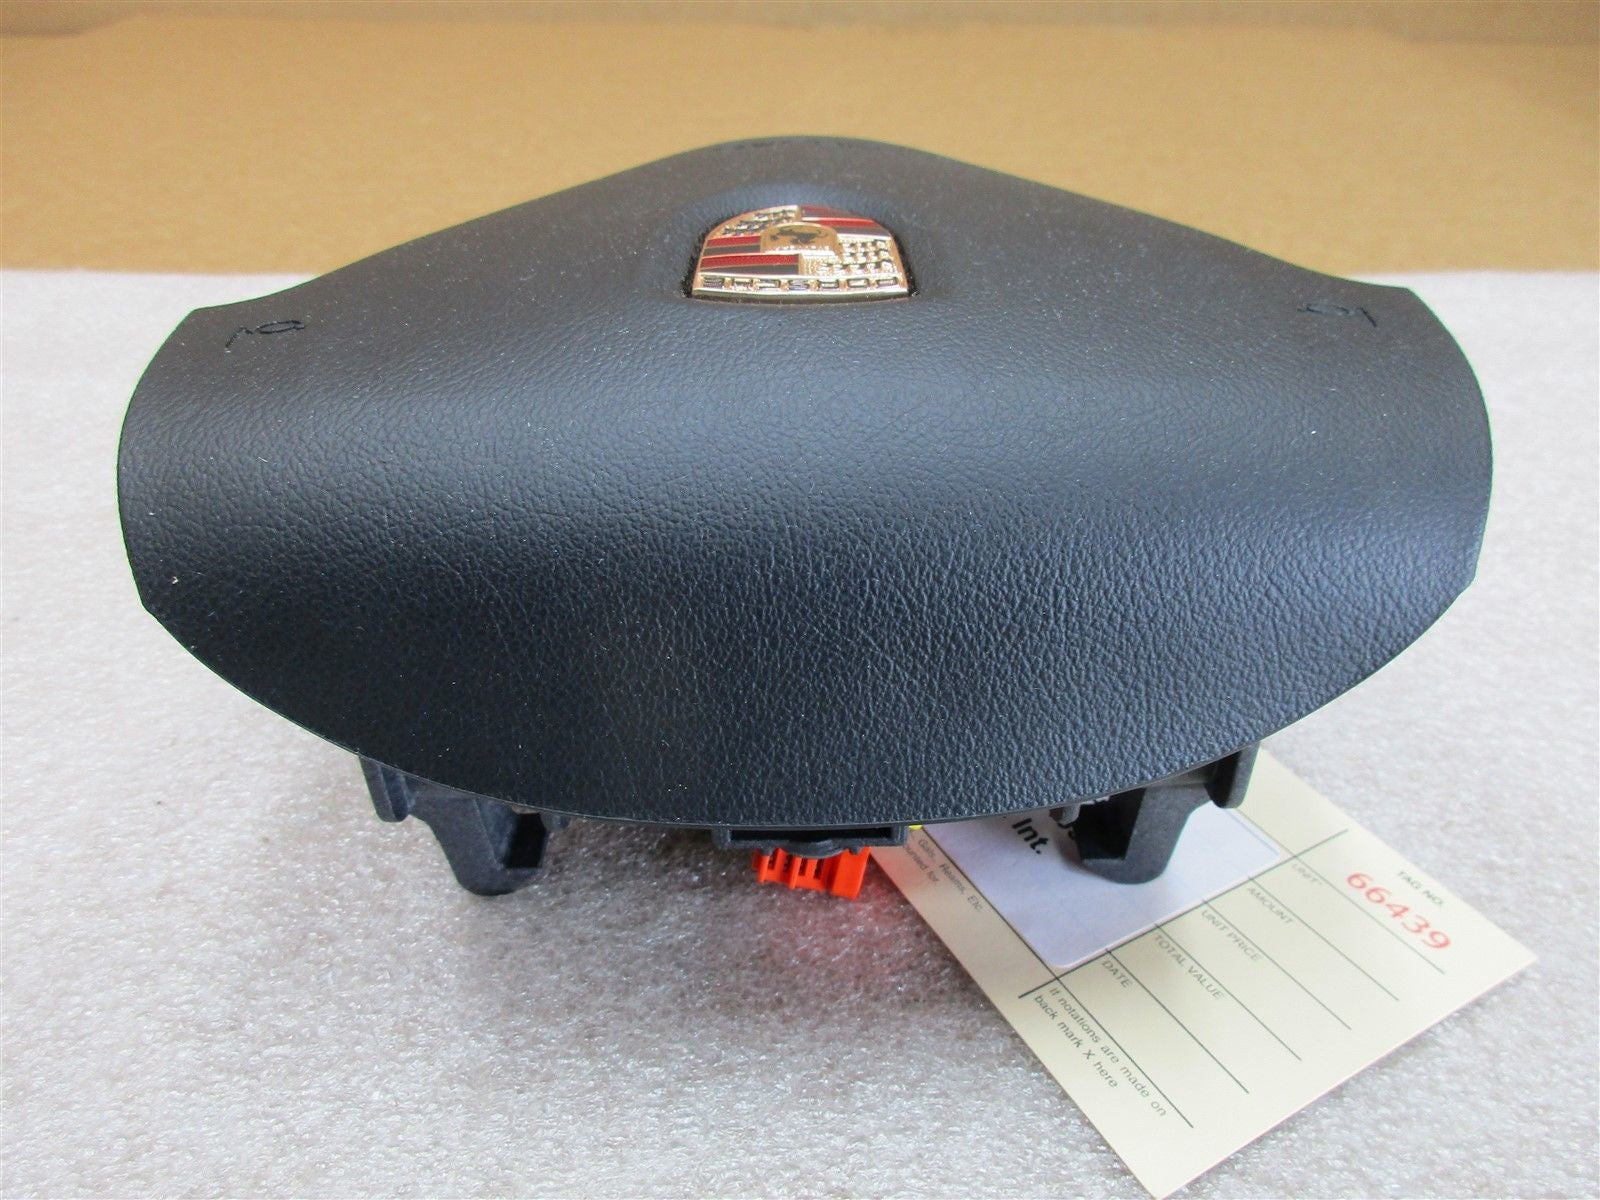 06 Cayman S RWD Porsche 987 L 3 SPOKE STEERING WHEEL AIR BAG 99780308905 24,512